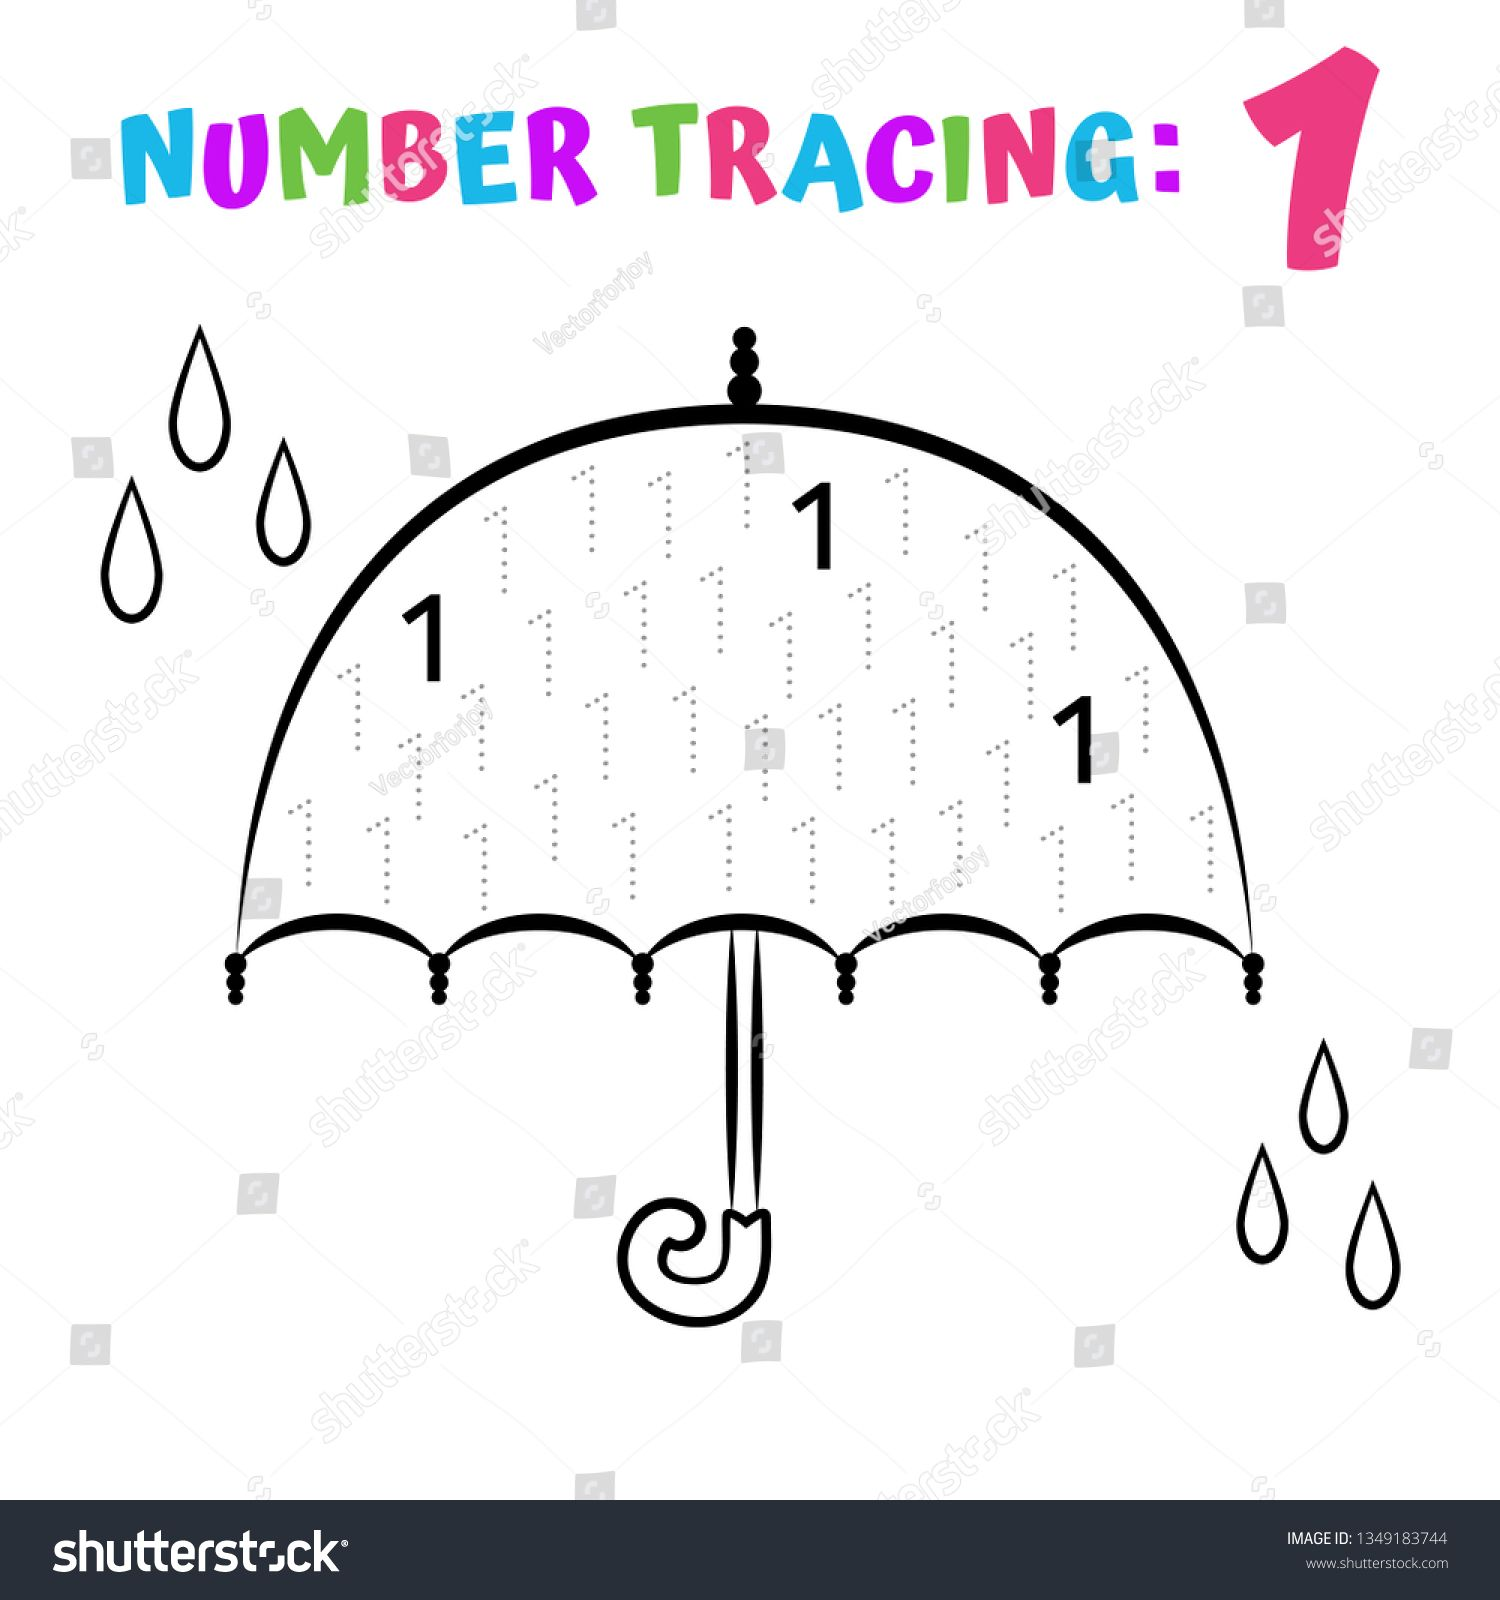 Number Tracing Worksheet Coloring Book Page Math Game